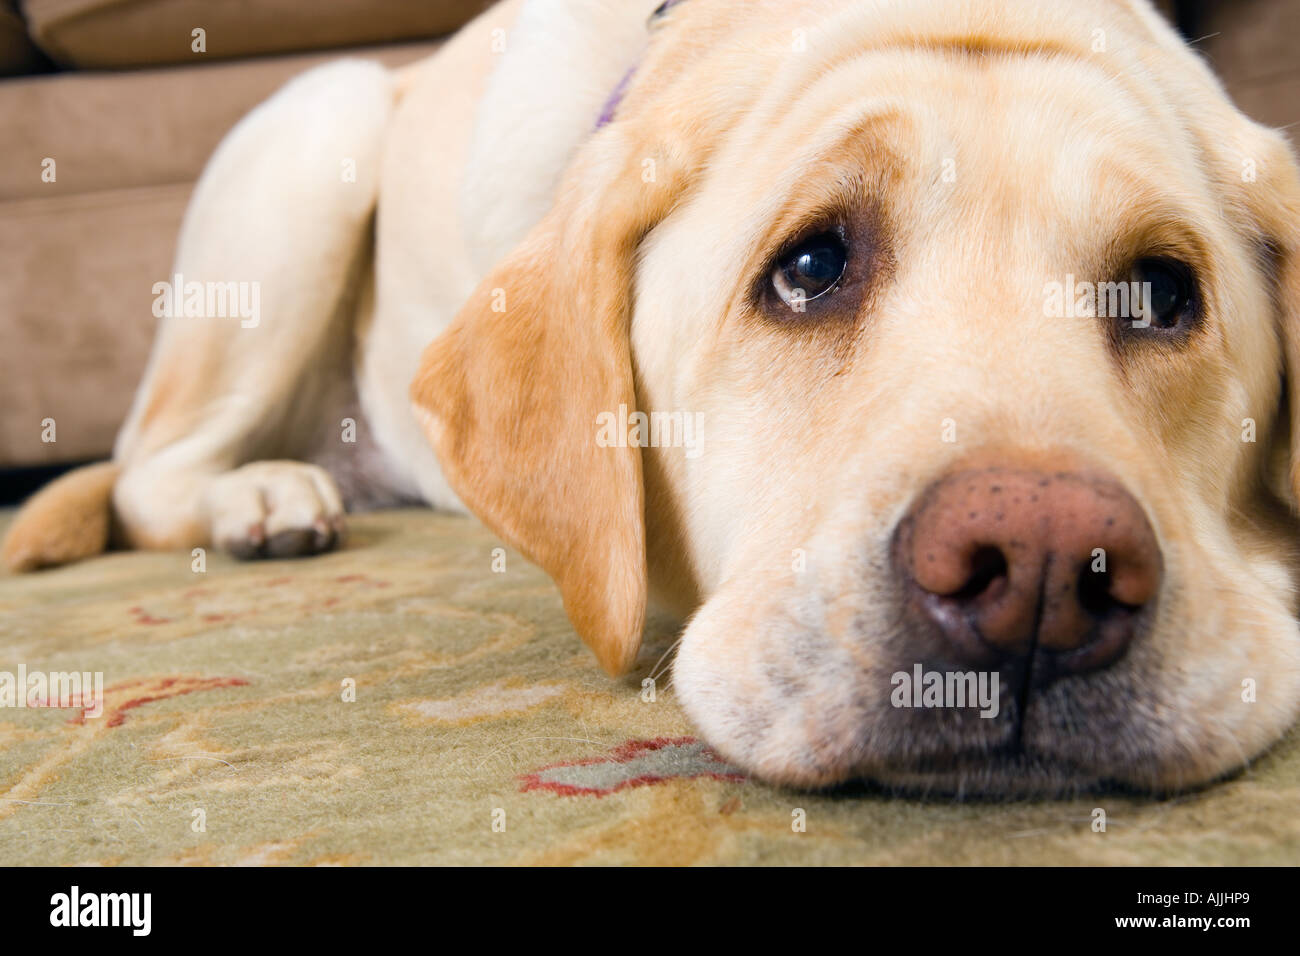 Puppy With Sad Eyes Stock Photos Puppy With Sad Eyes Stock Images